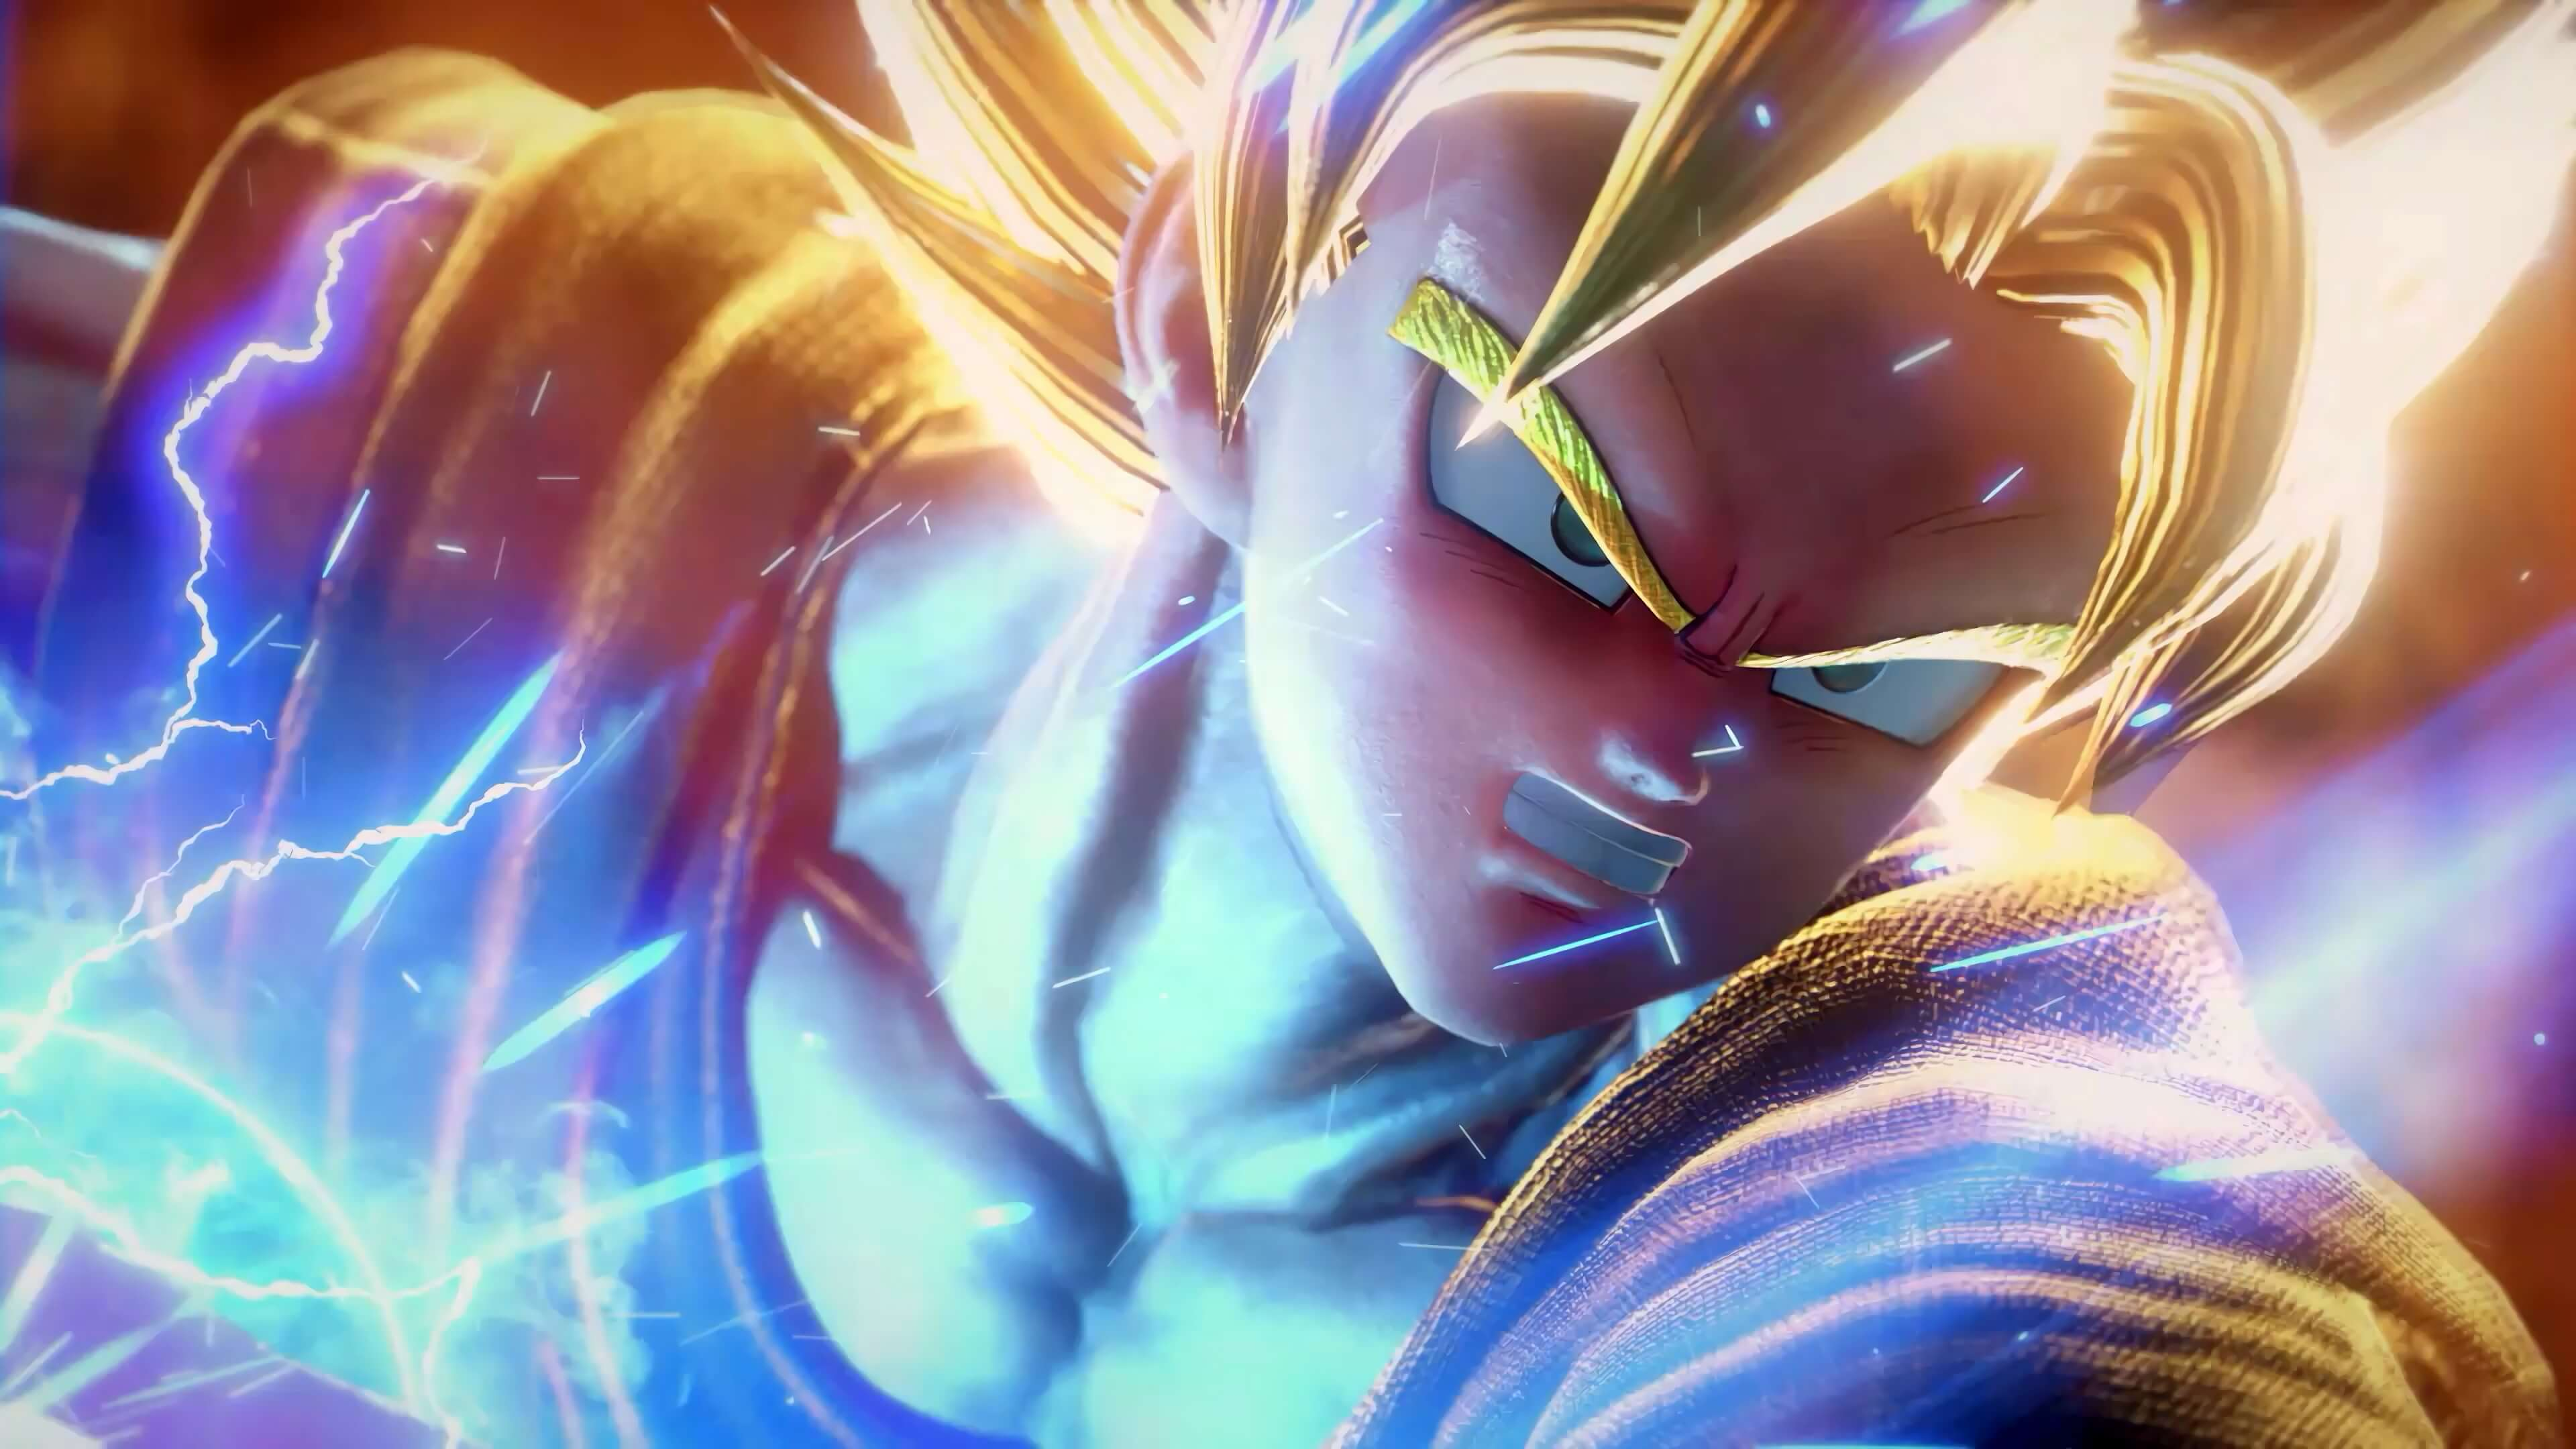 4k jump force wallpaper 67105